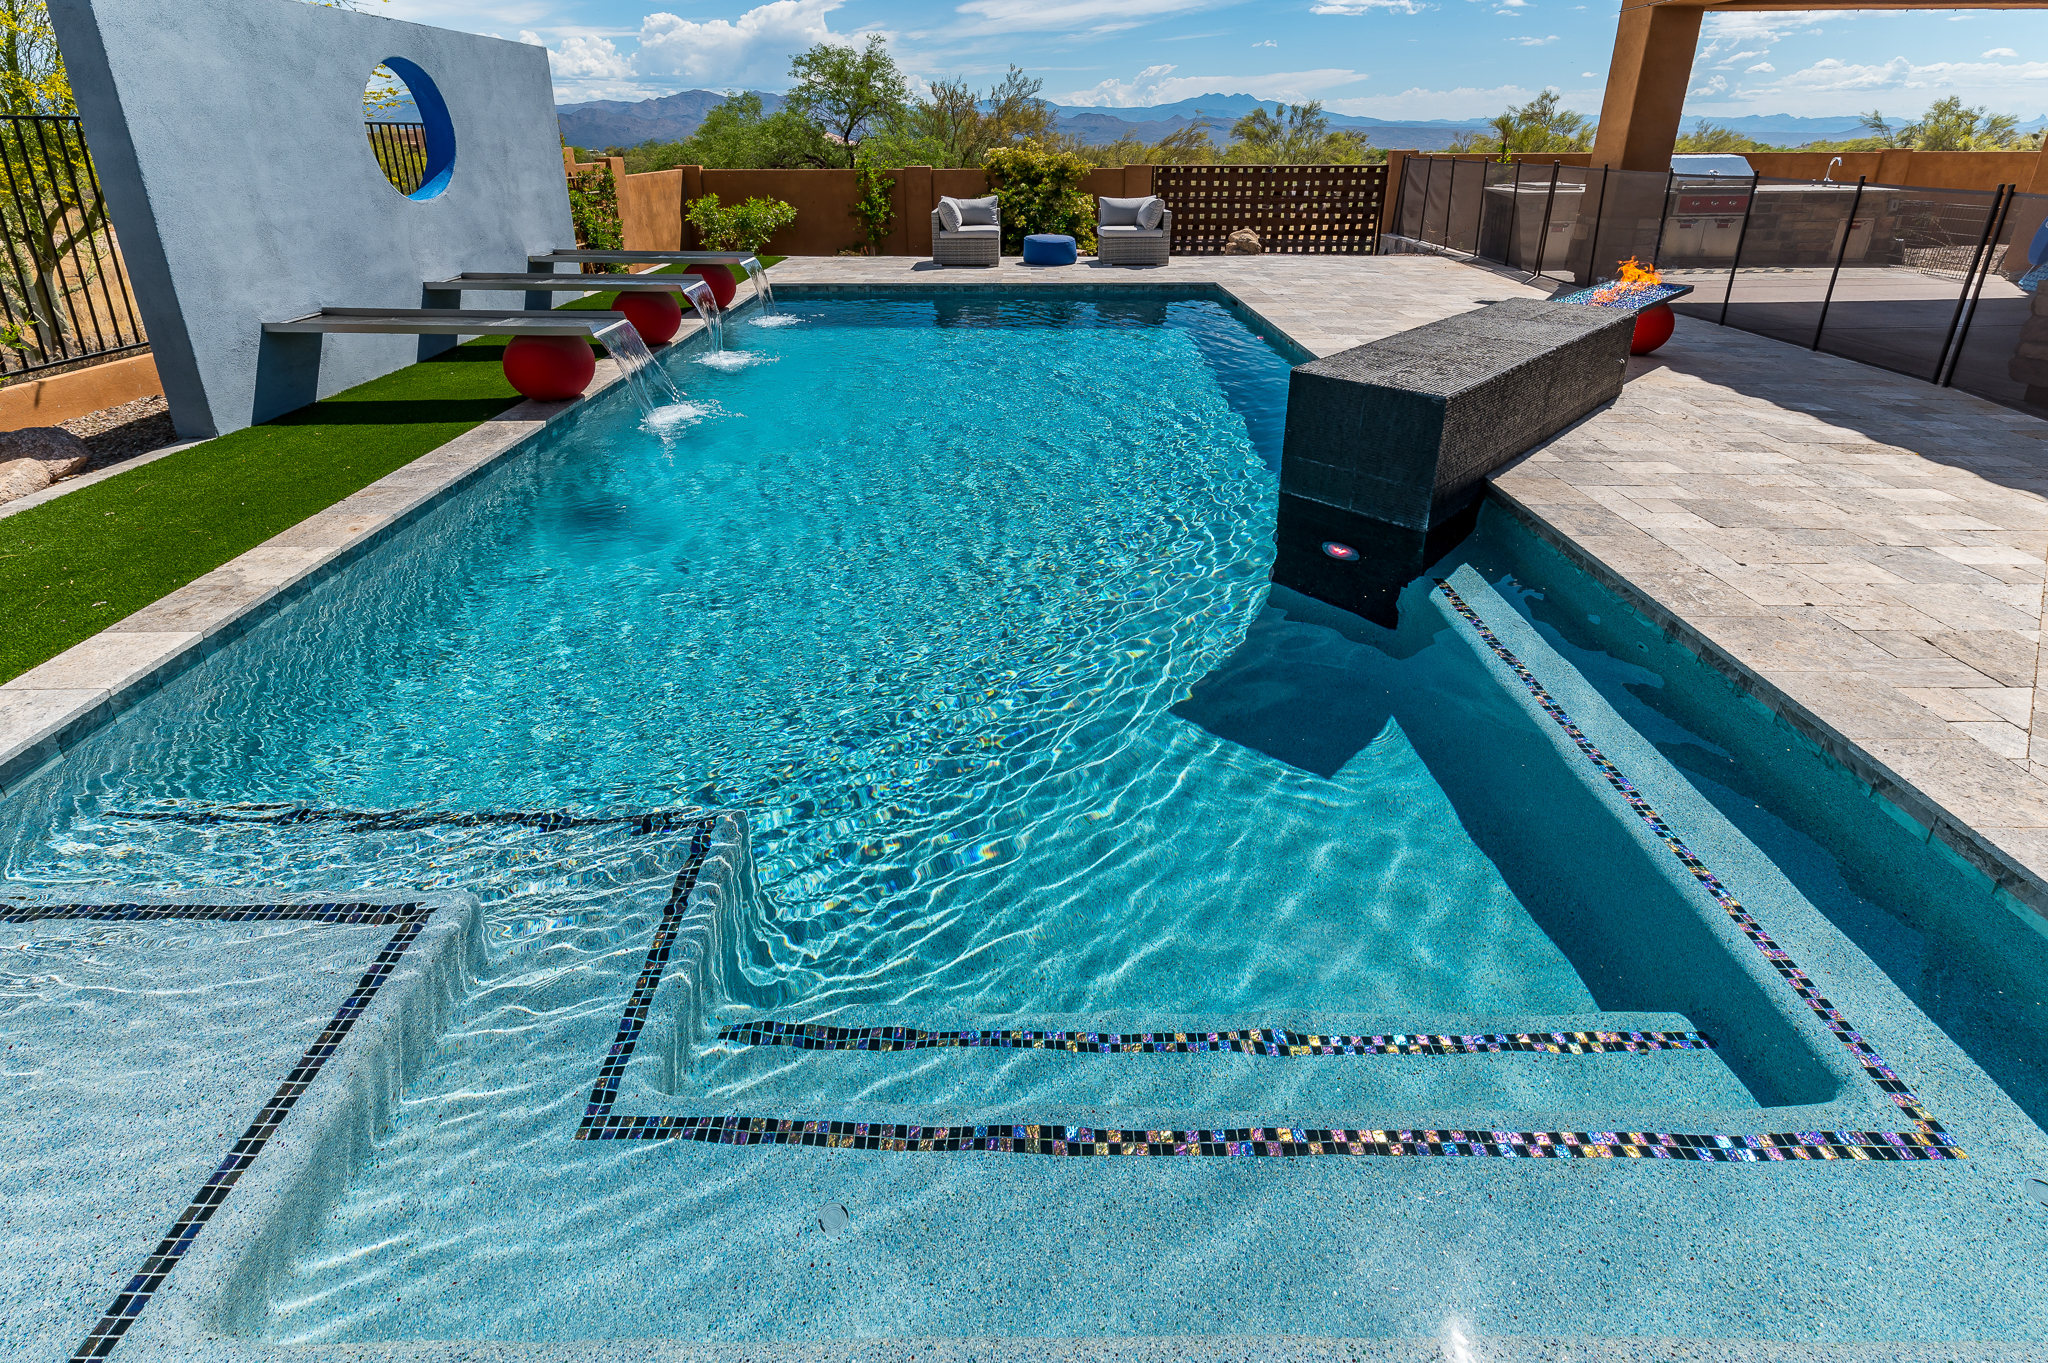 Geometric Swimming Pool Designs — Presidential Pools, Spas & Patio ...